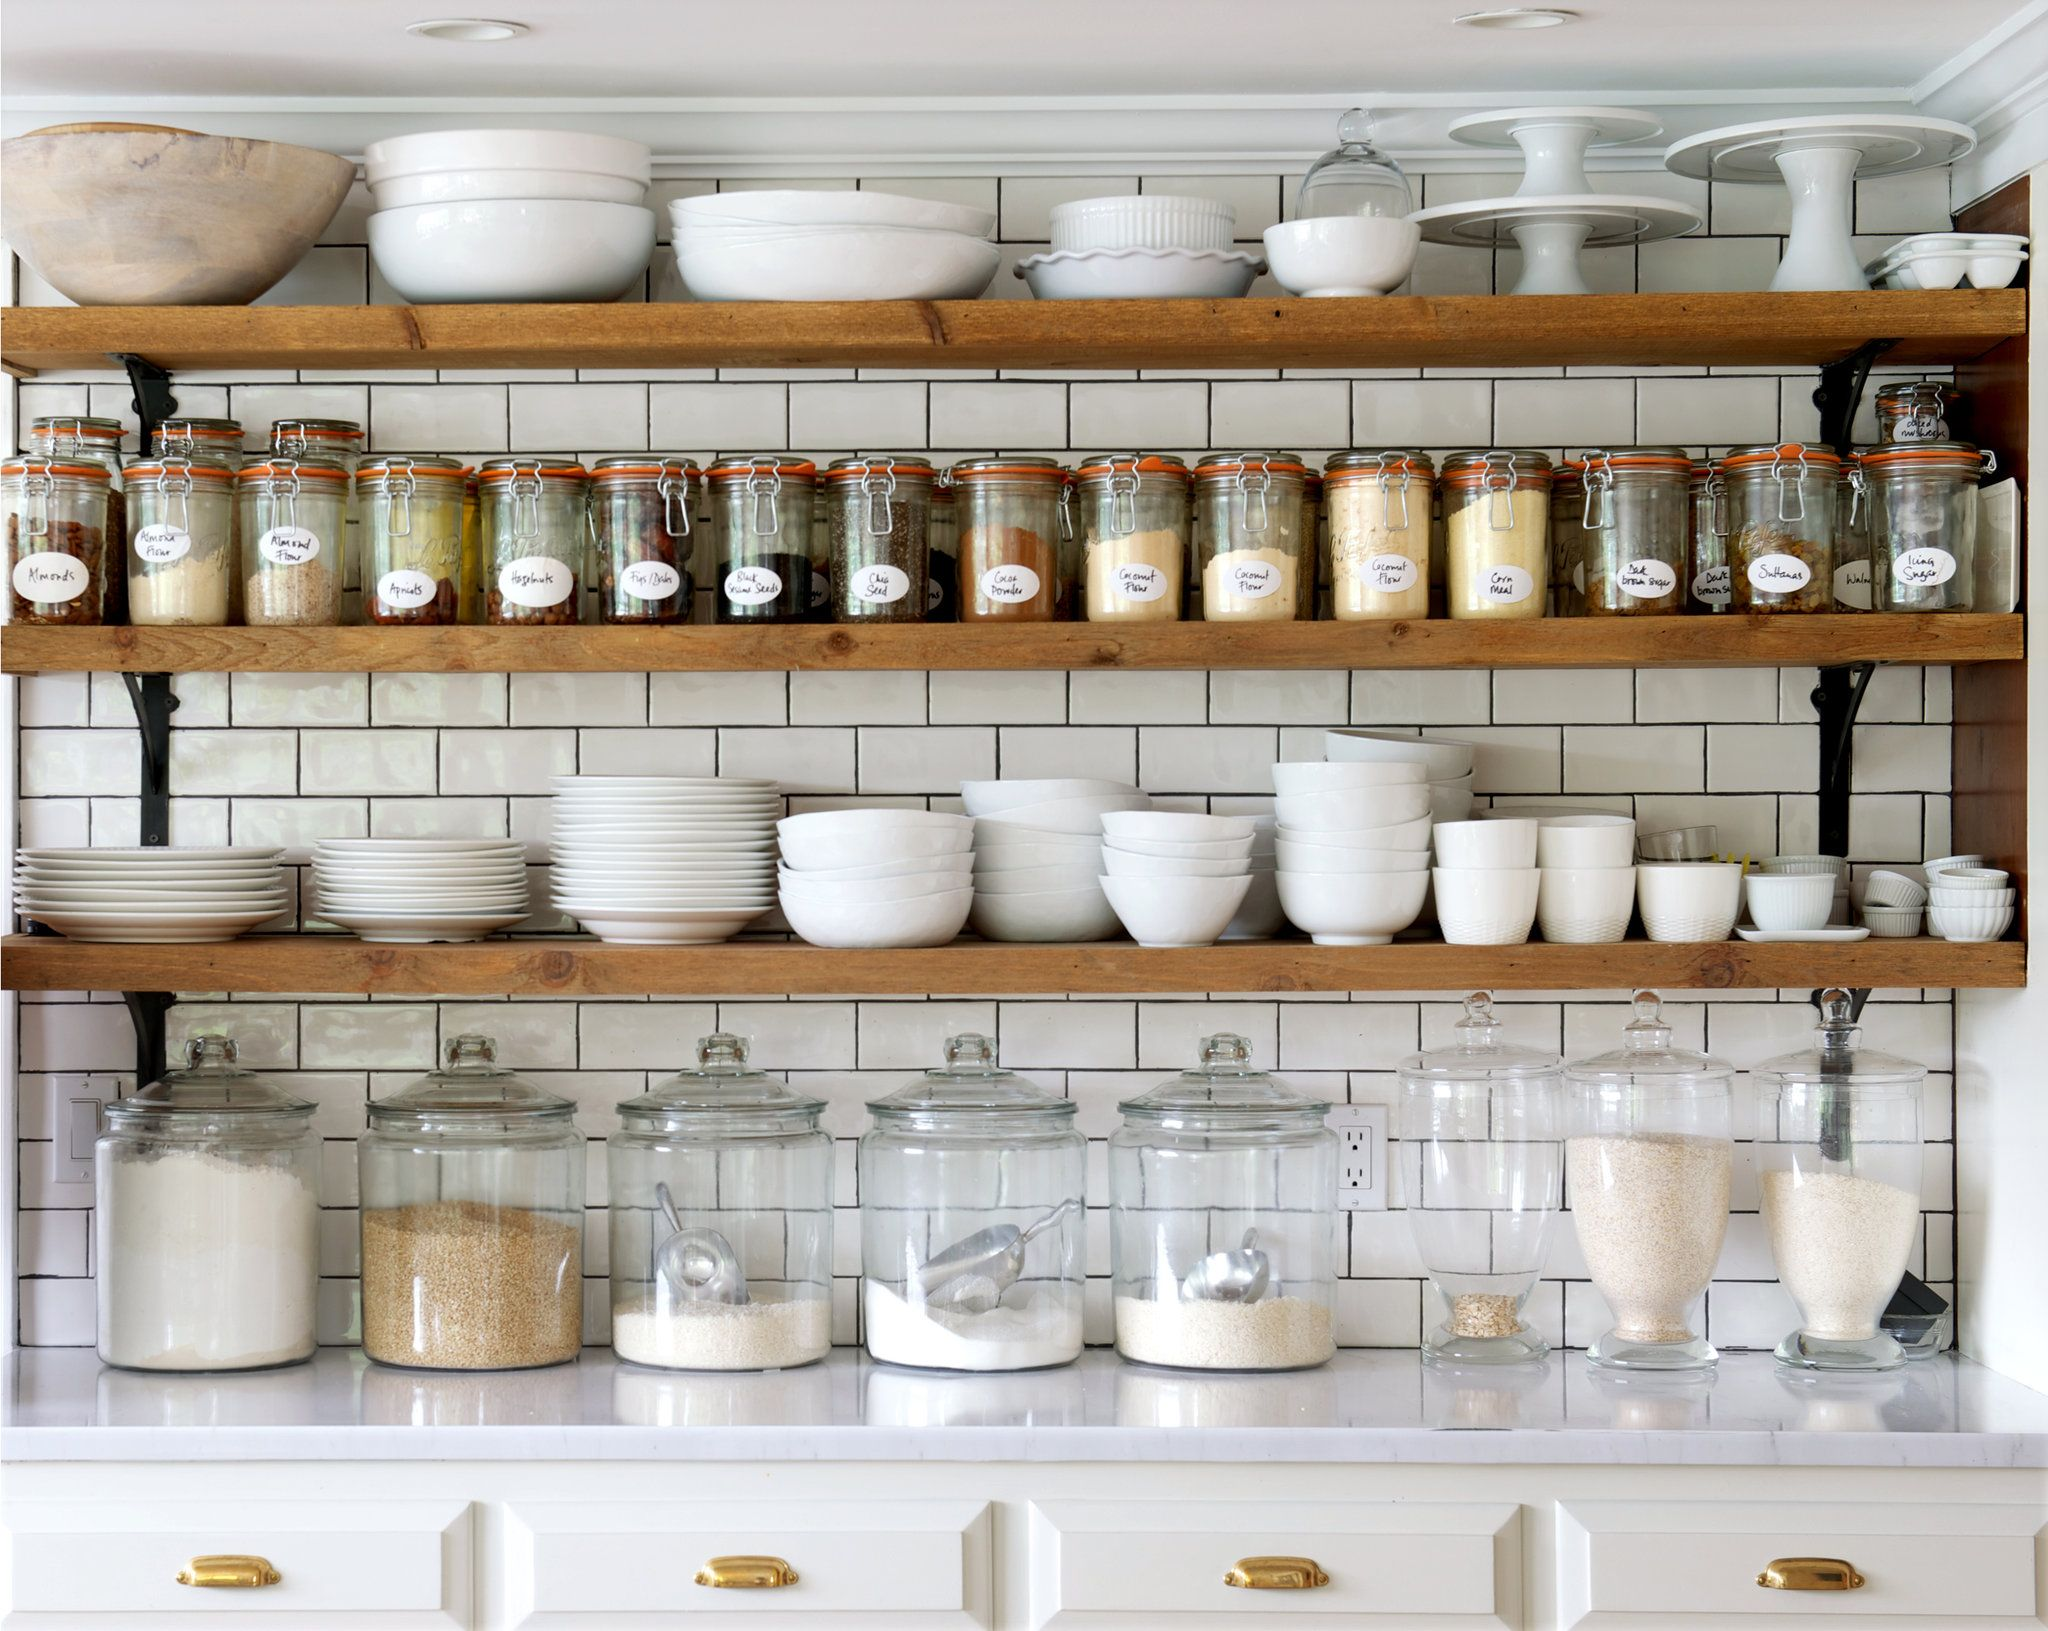 jane green's creaky cottage | upper cabinets and shelving